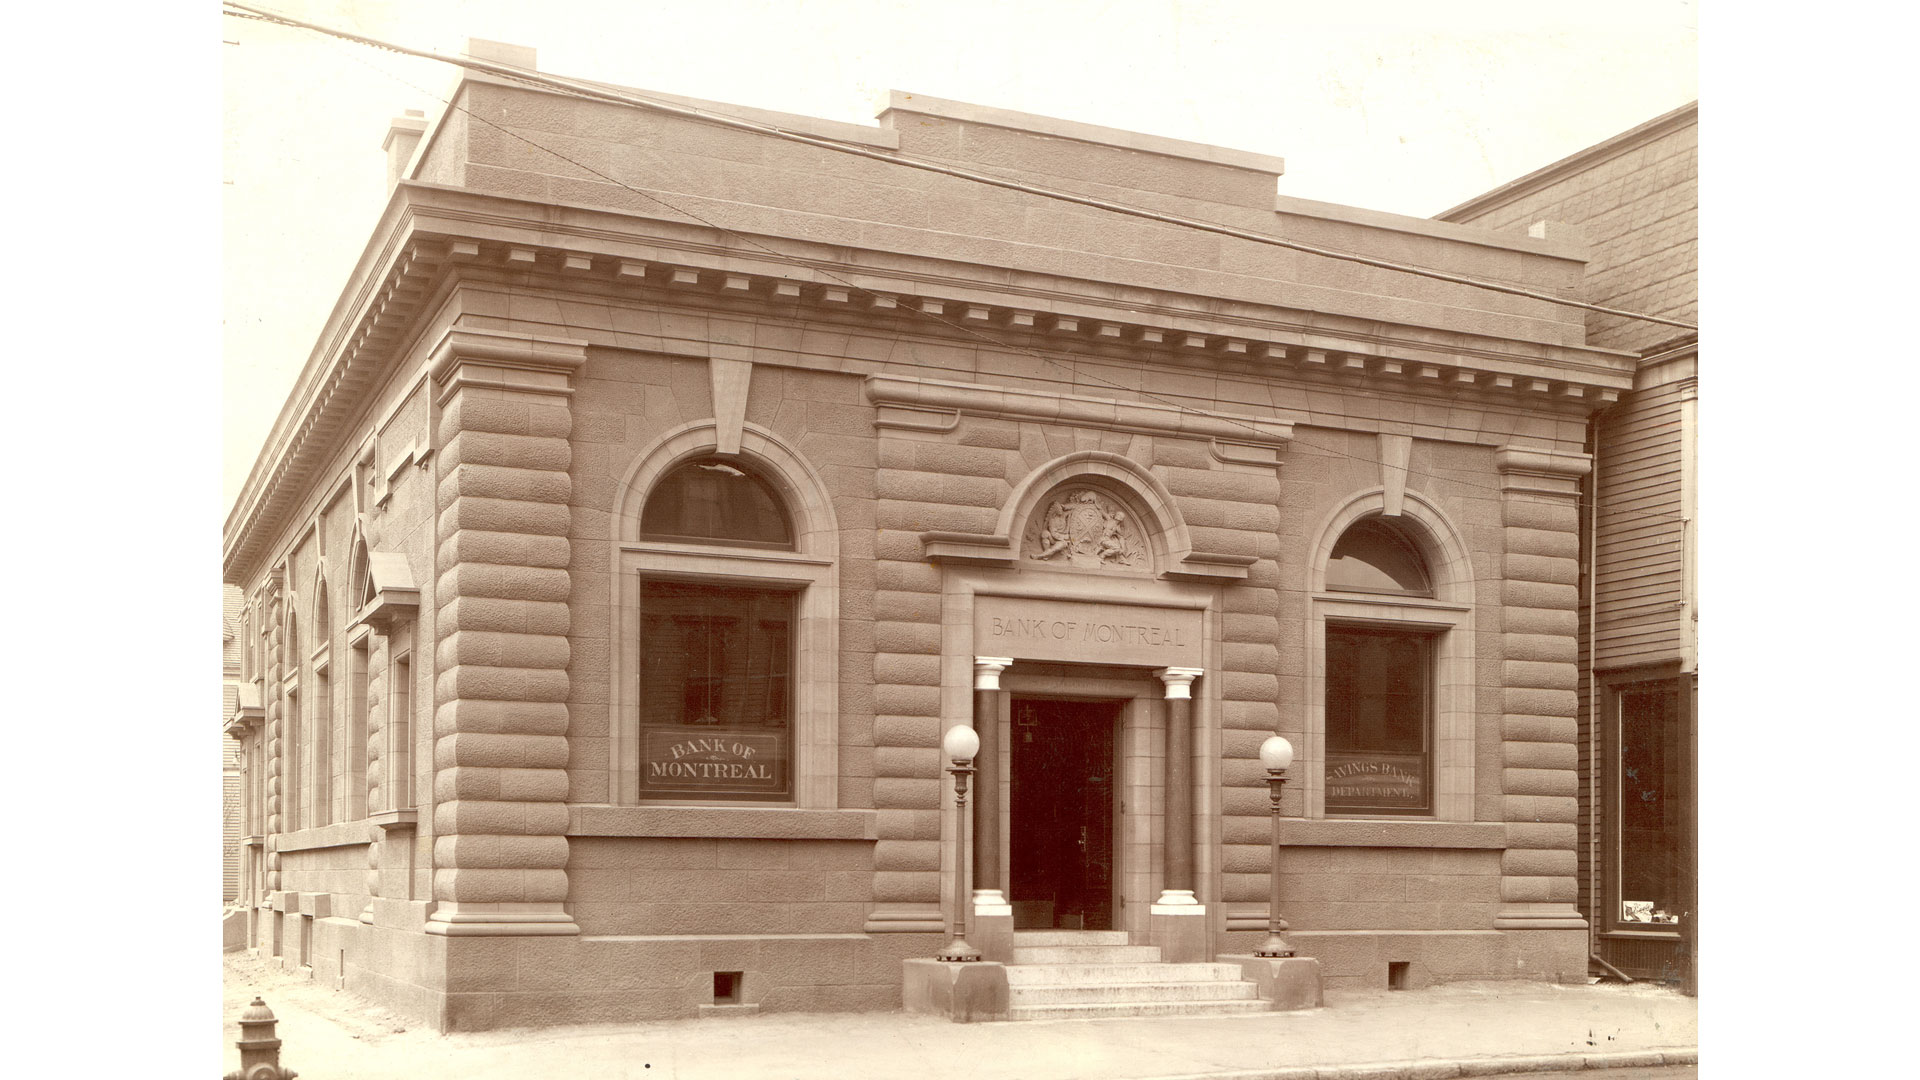 The Moncton, New Brunswick branch, opened in 1908